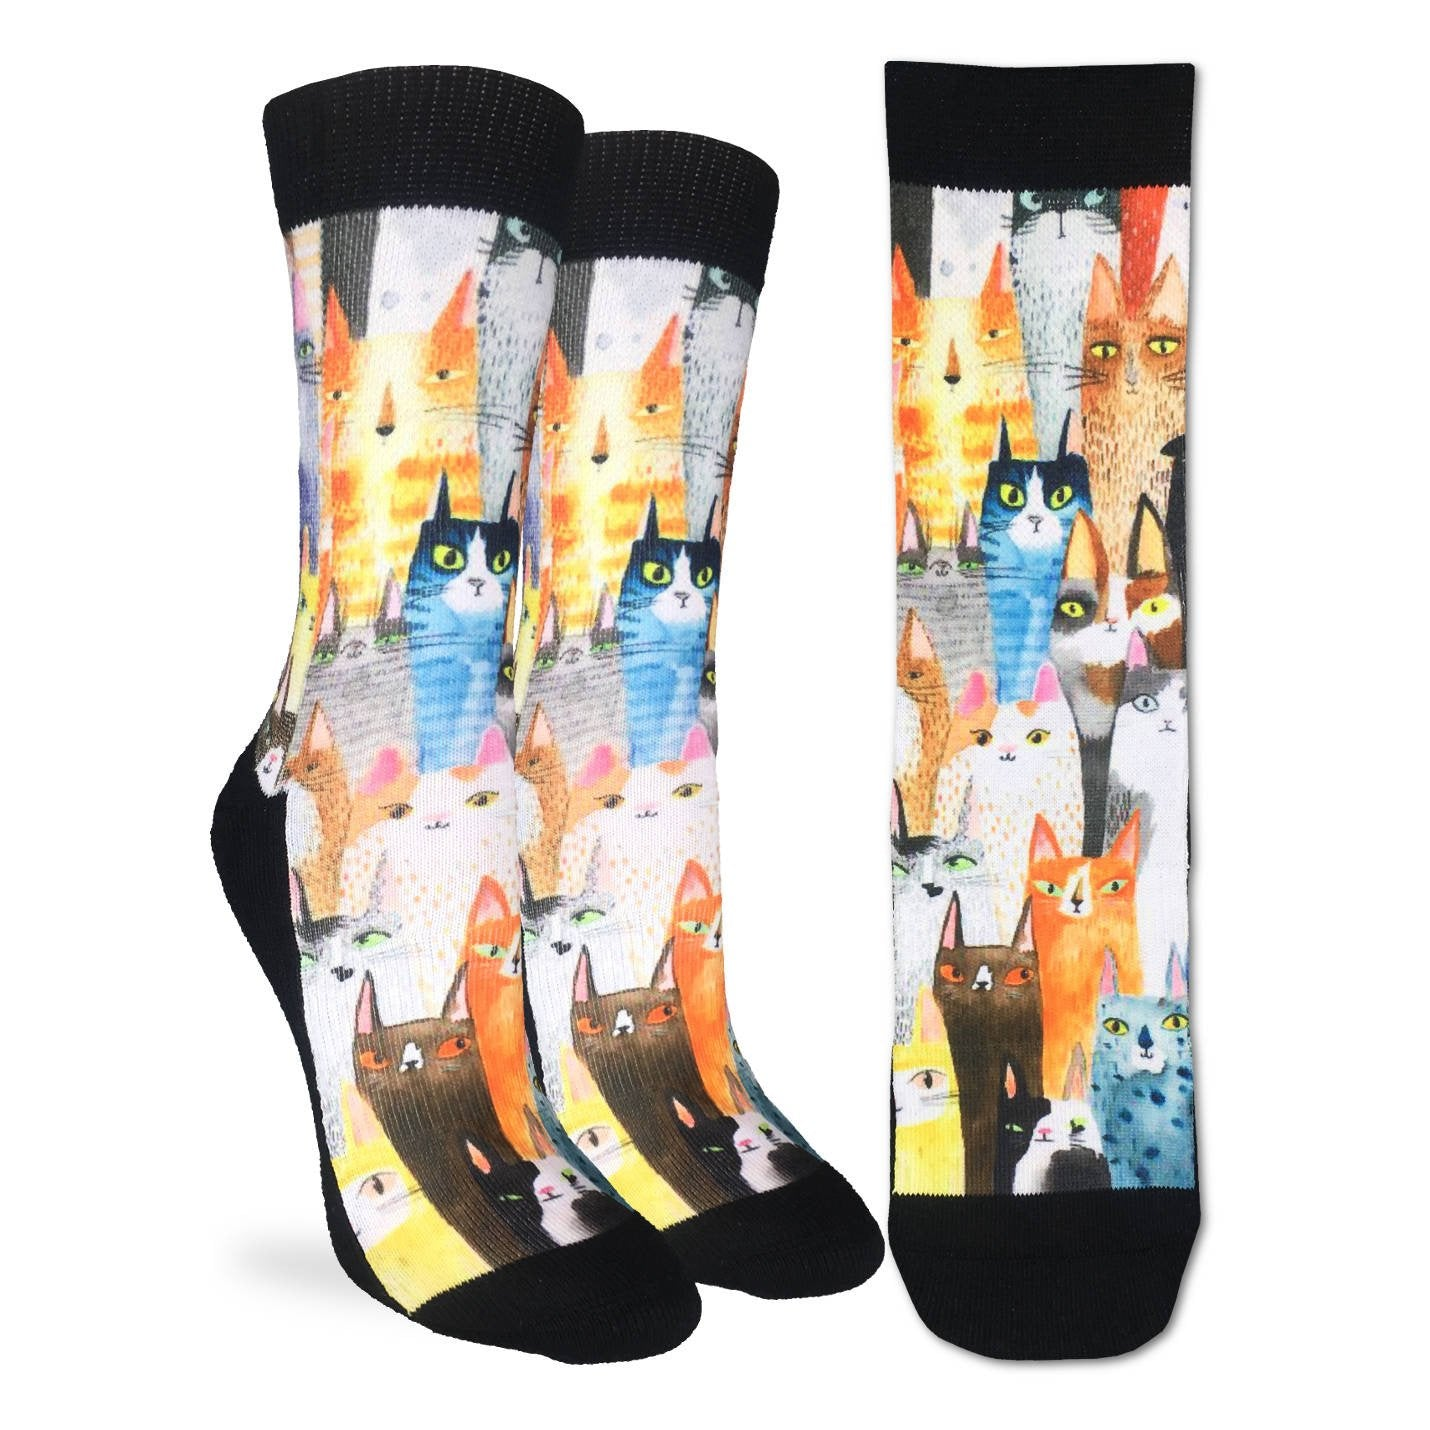 Women's Cat Party Socks - Good Luck Sock